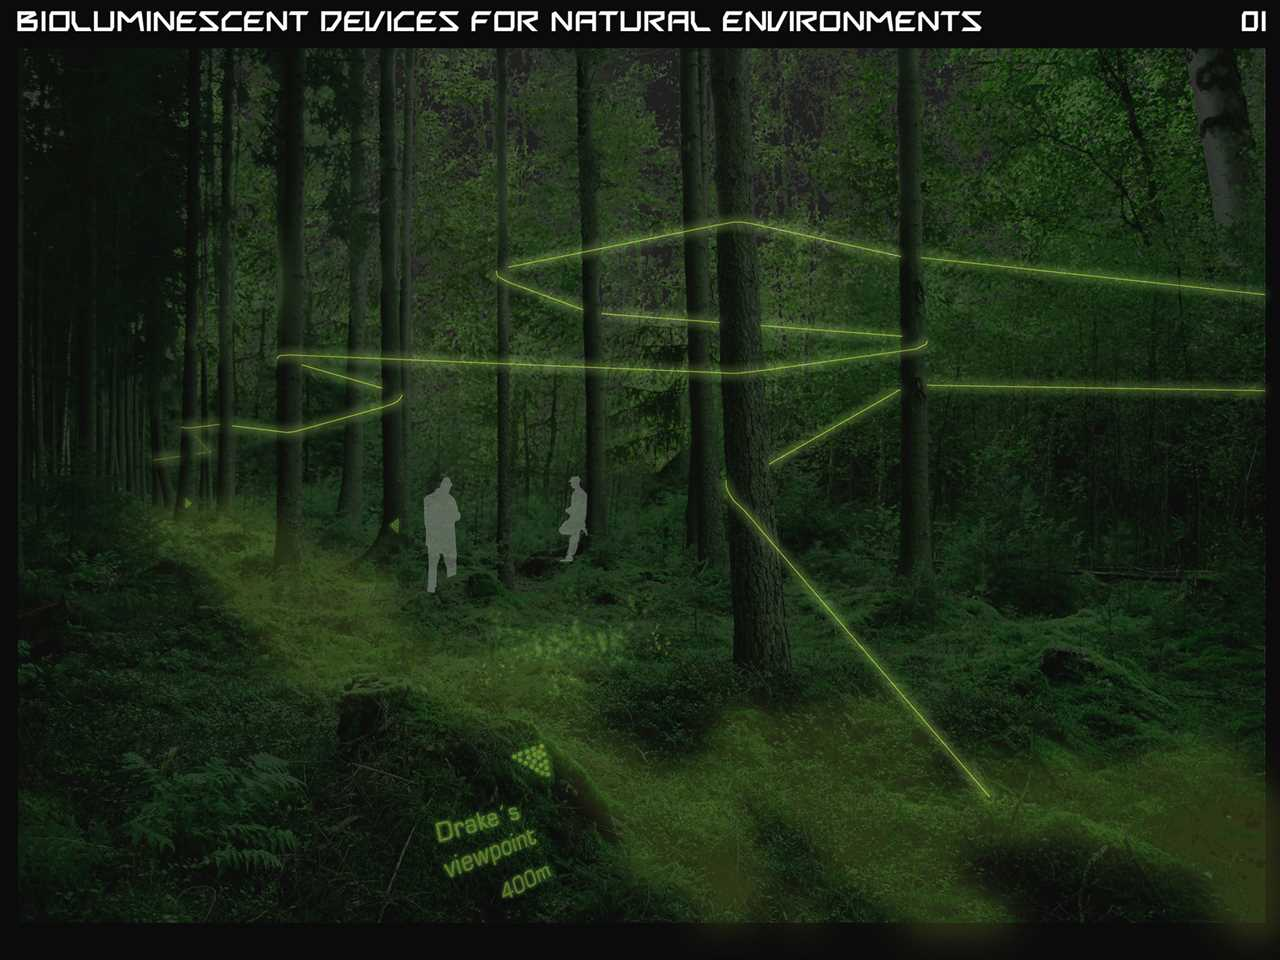 """Holcim Awards """"Next Generation"""" 3rd prize 2011 Europe: Bioluminescent devices for …"""